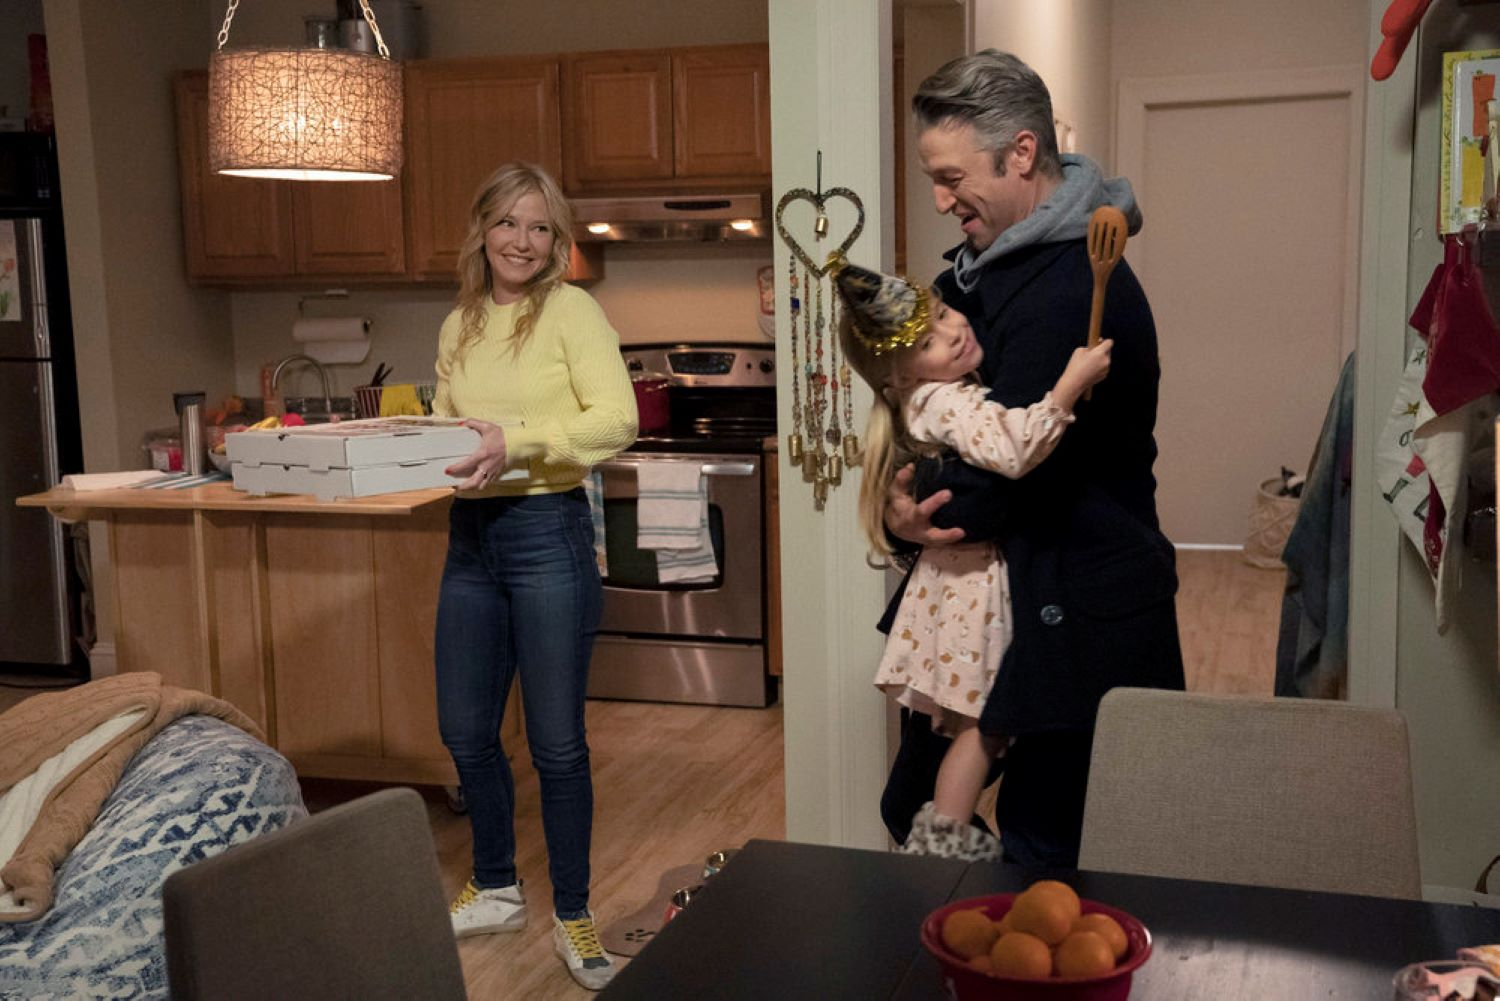 'Law & Order: SVU' (l-r) Kelli Giddish as Detective Amanda Rollins, Charlotte and Vivian Cabell as Jesse Murphy Rollins, Peter Scanavino as Assistant District Attorney Sonny Carisi